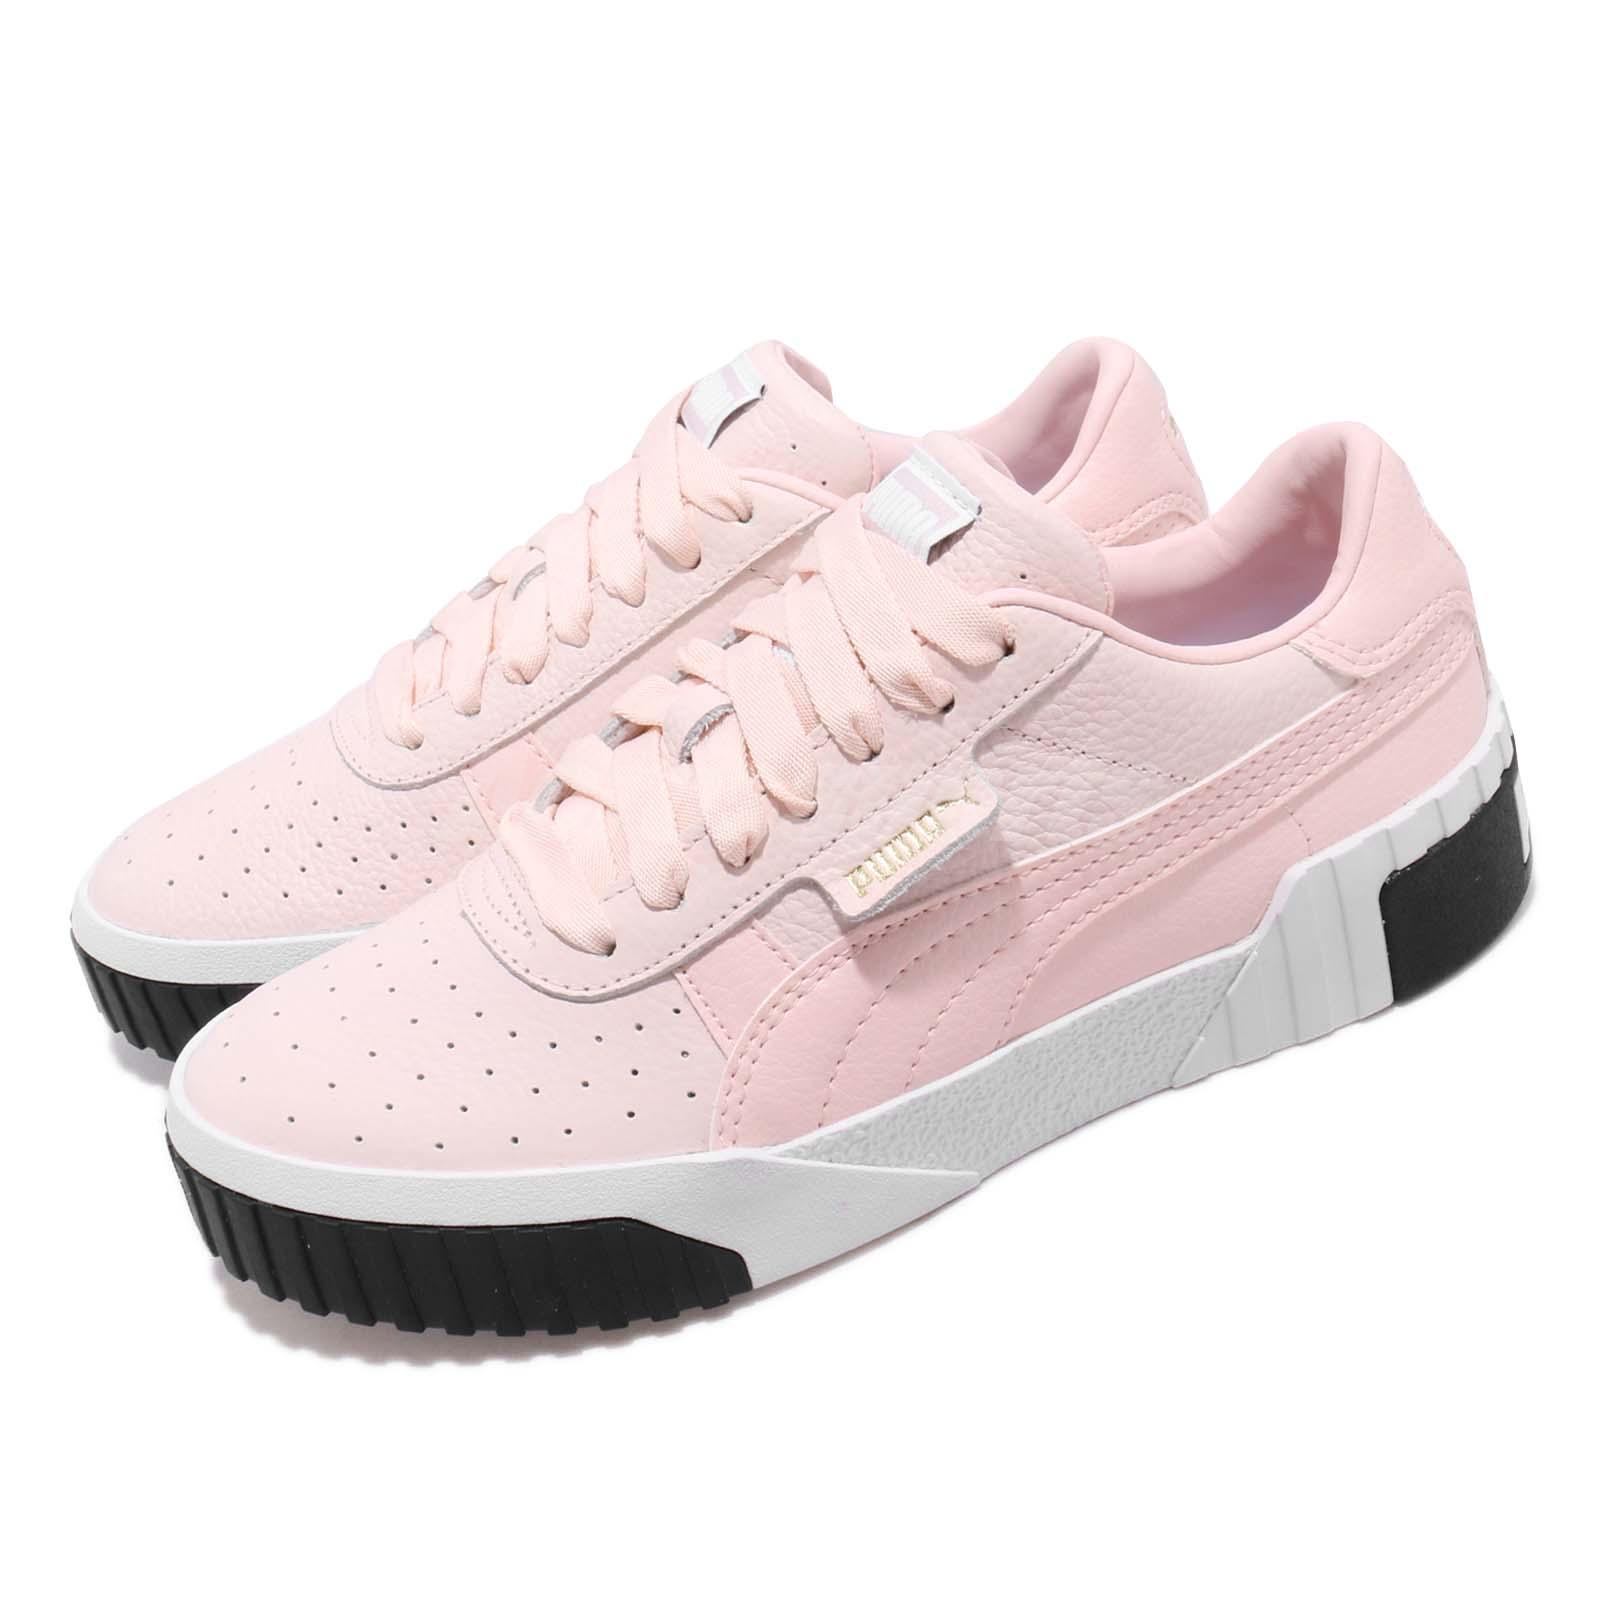 42bd41269 Details about Puma Cali Wns Pink Dogwood White Women Fashion Shoes Sneakers  369155-06